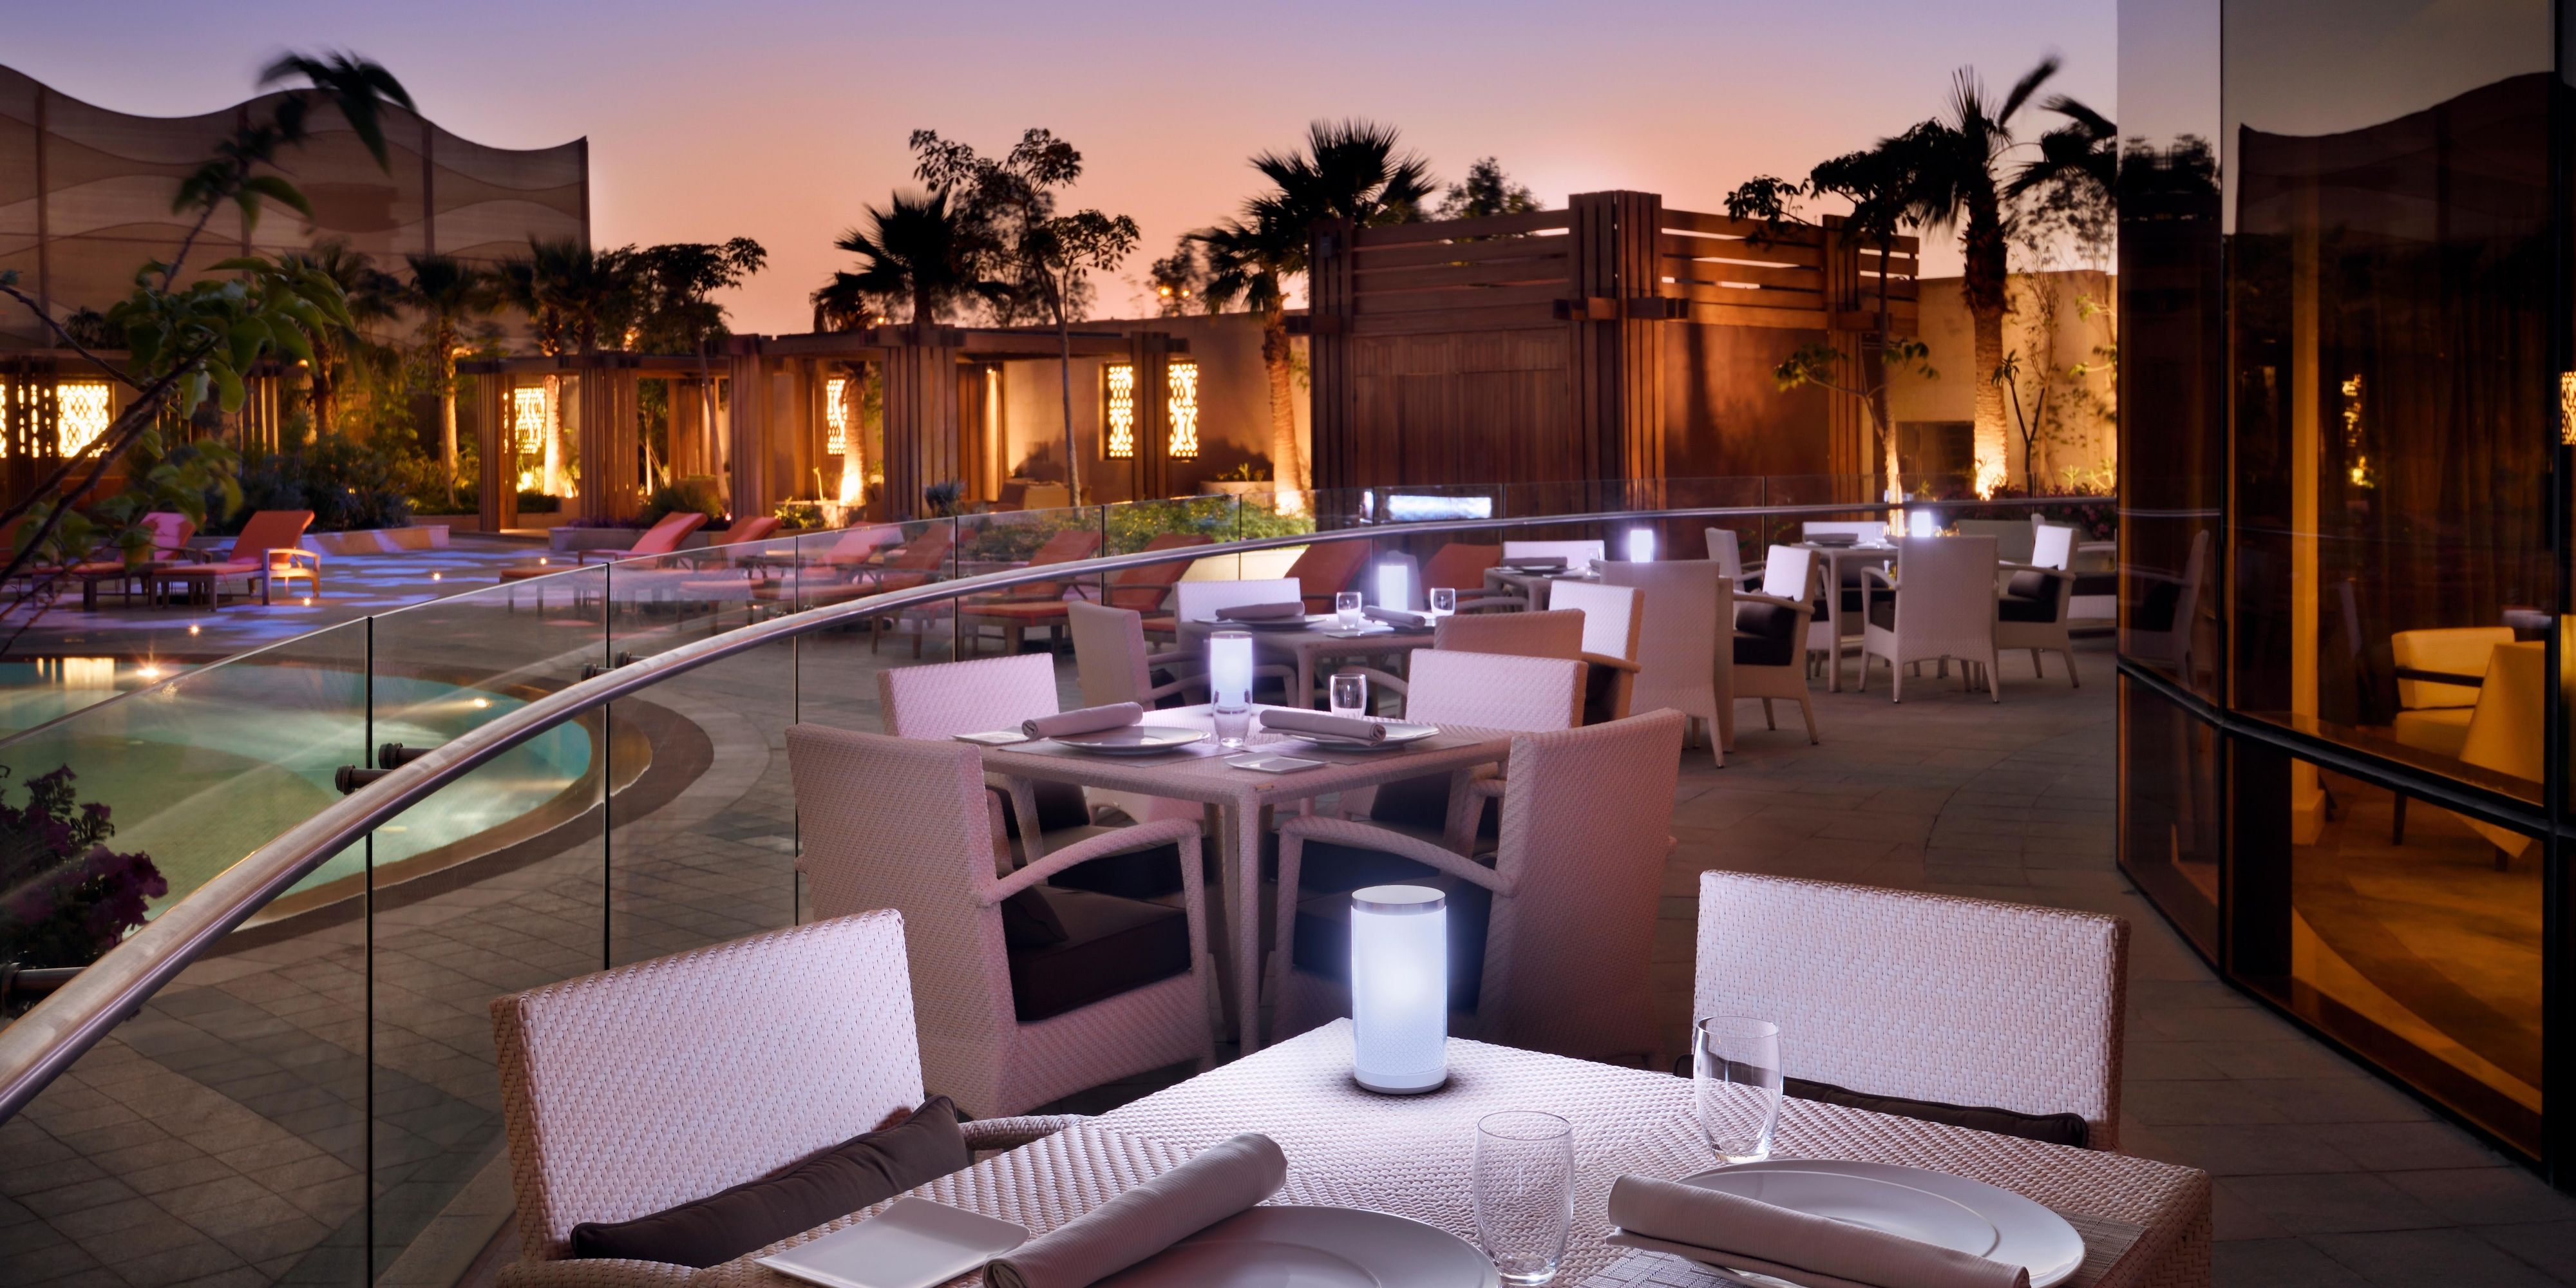 poolside service at Cabana bar with best selected dishes and drink